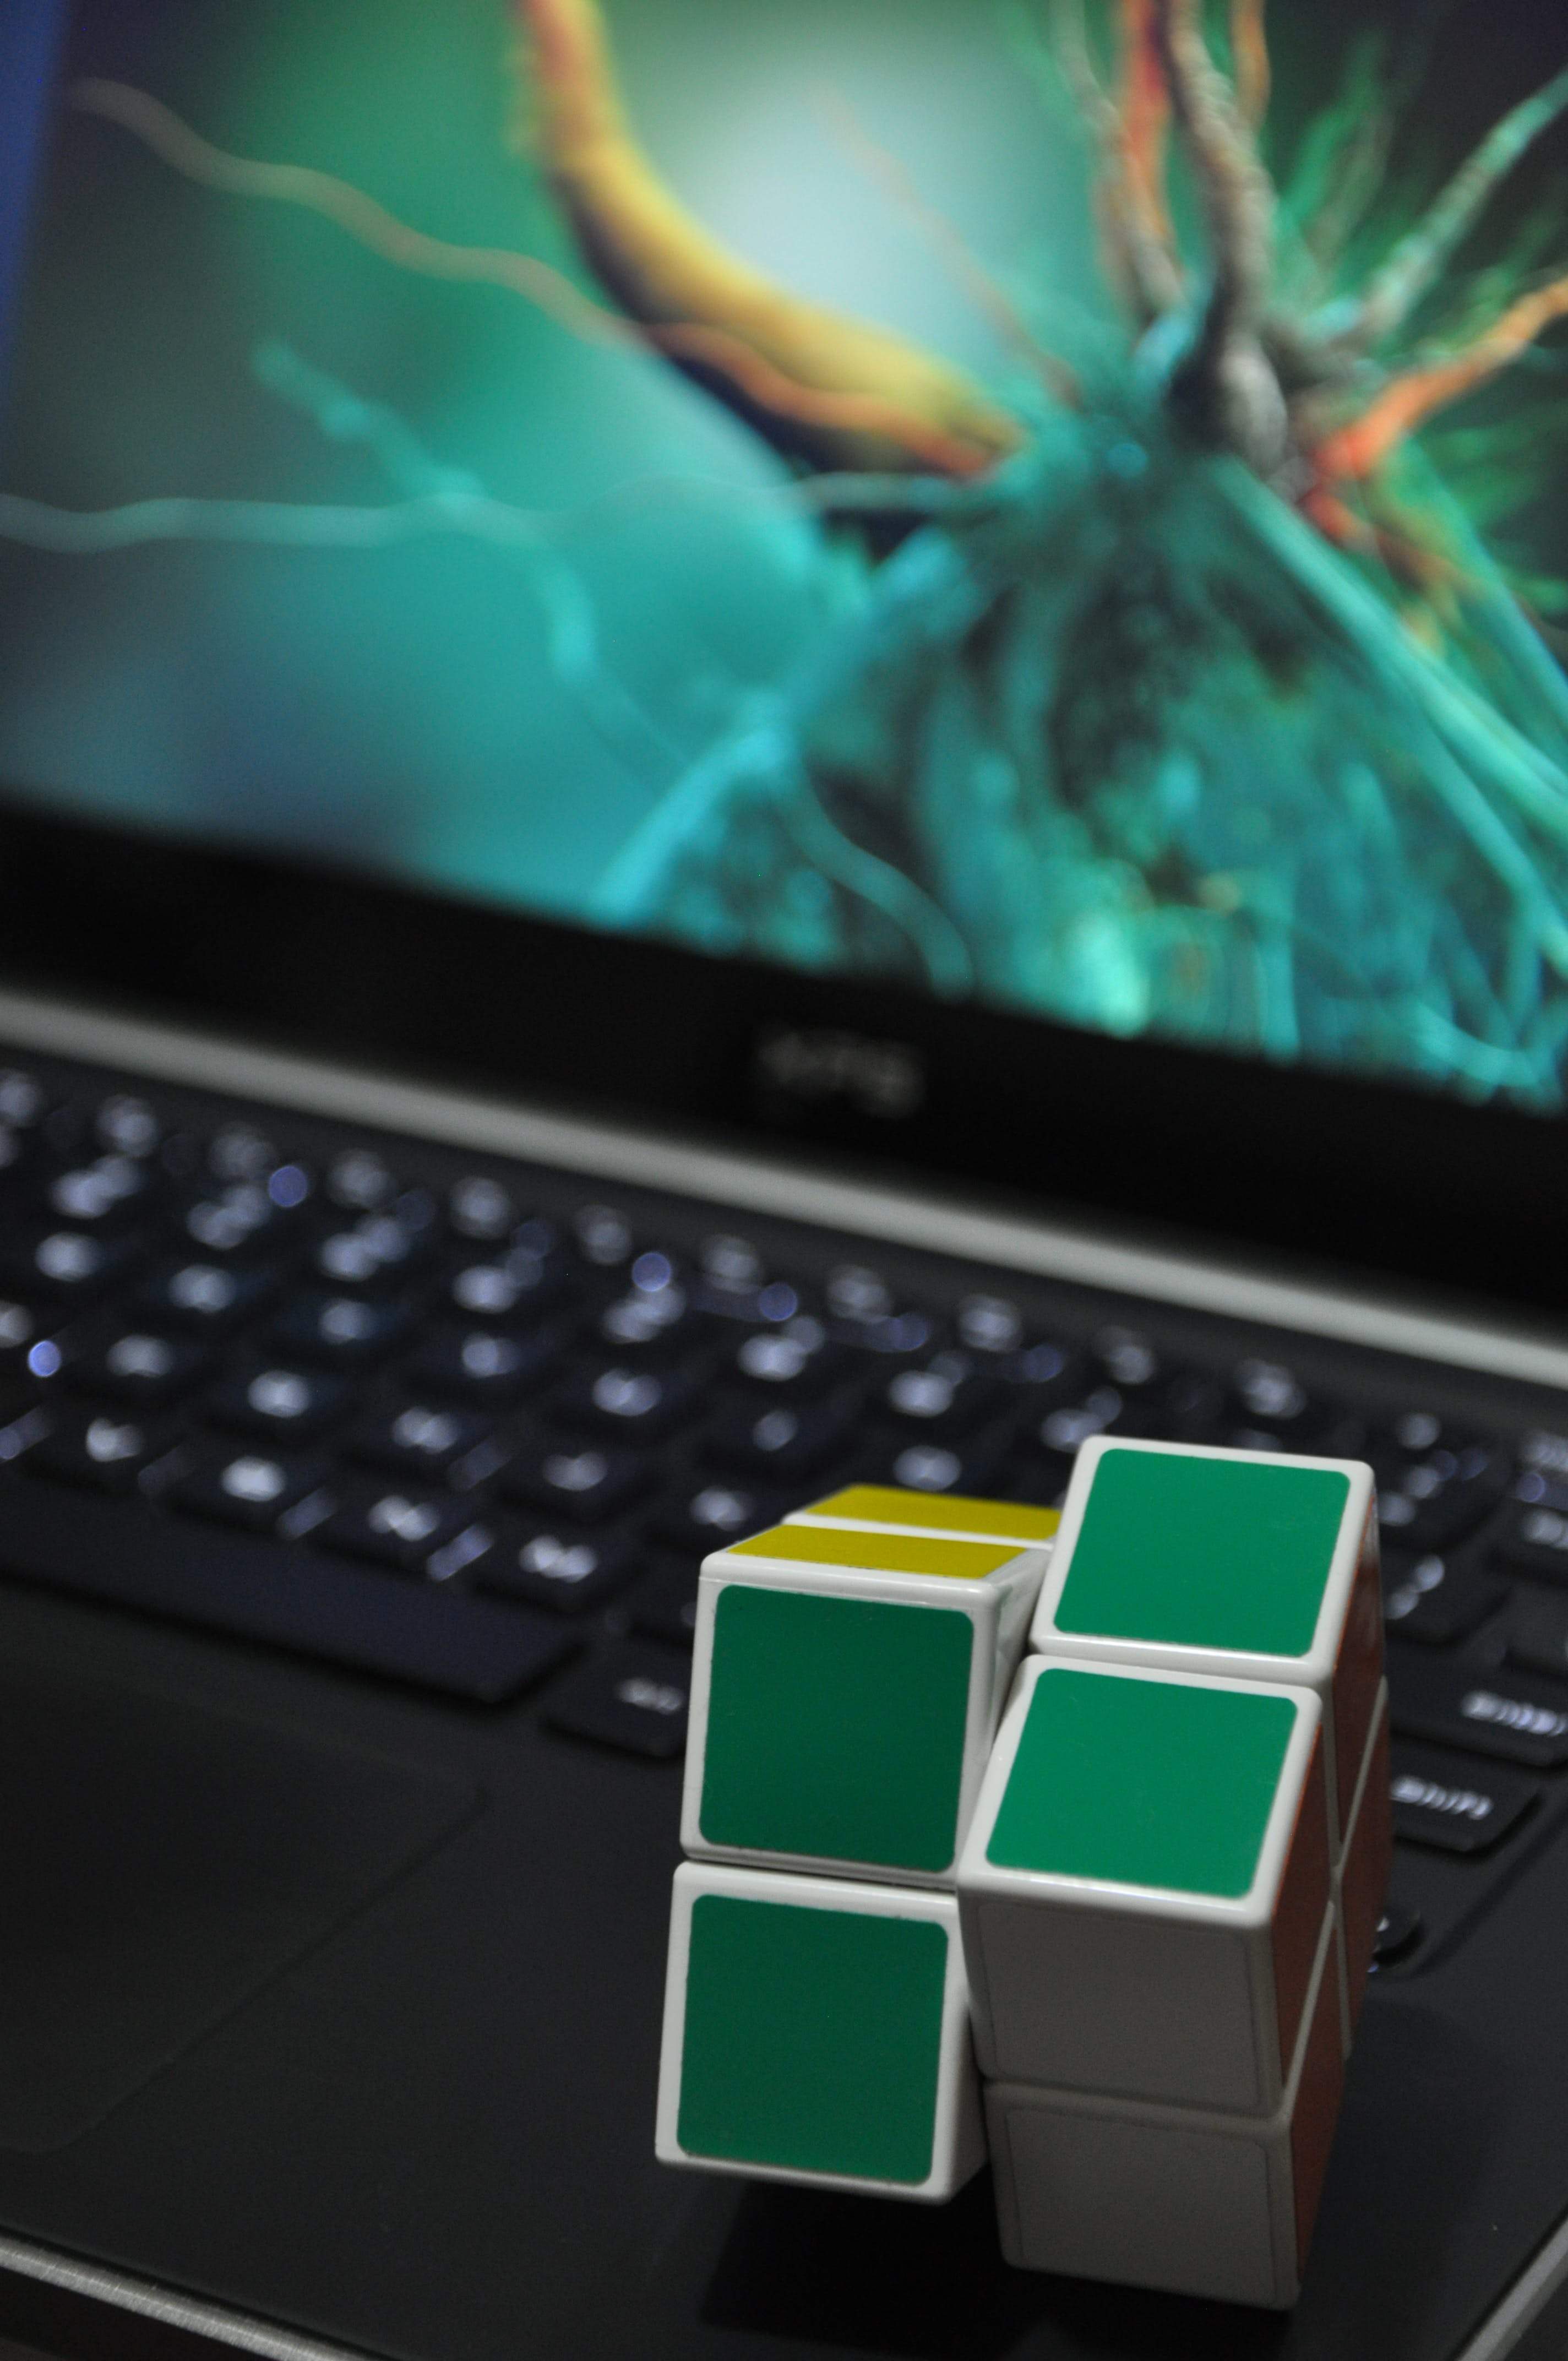 Green and Blue Rubik's Cube Toy